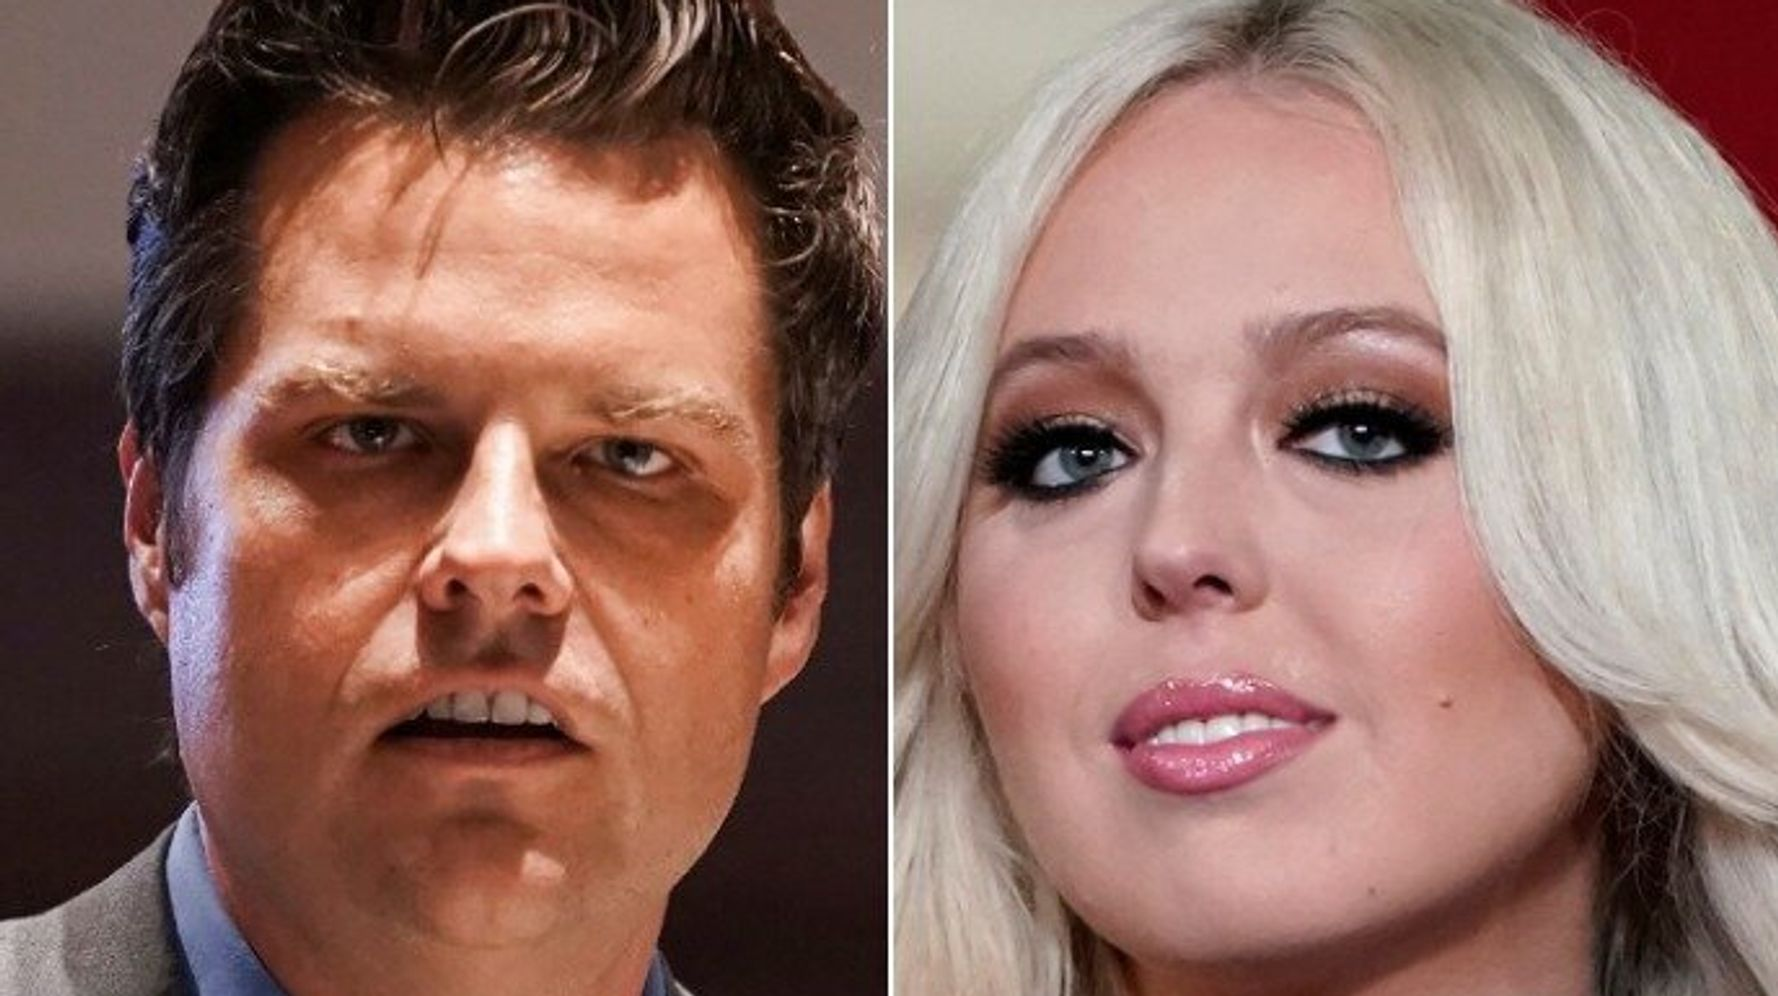 Matt Gaetz's 'Creepy' Tweet To Tiffany Trump Leaves Twitter Users Feeling Gross